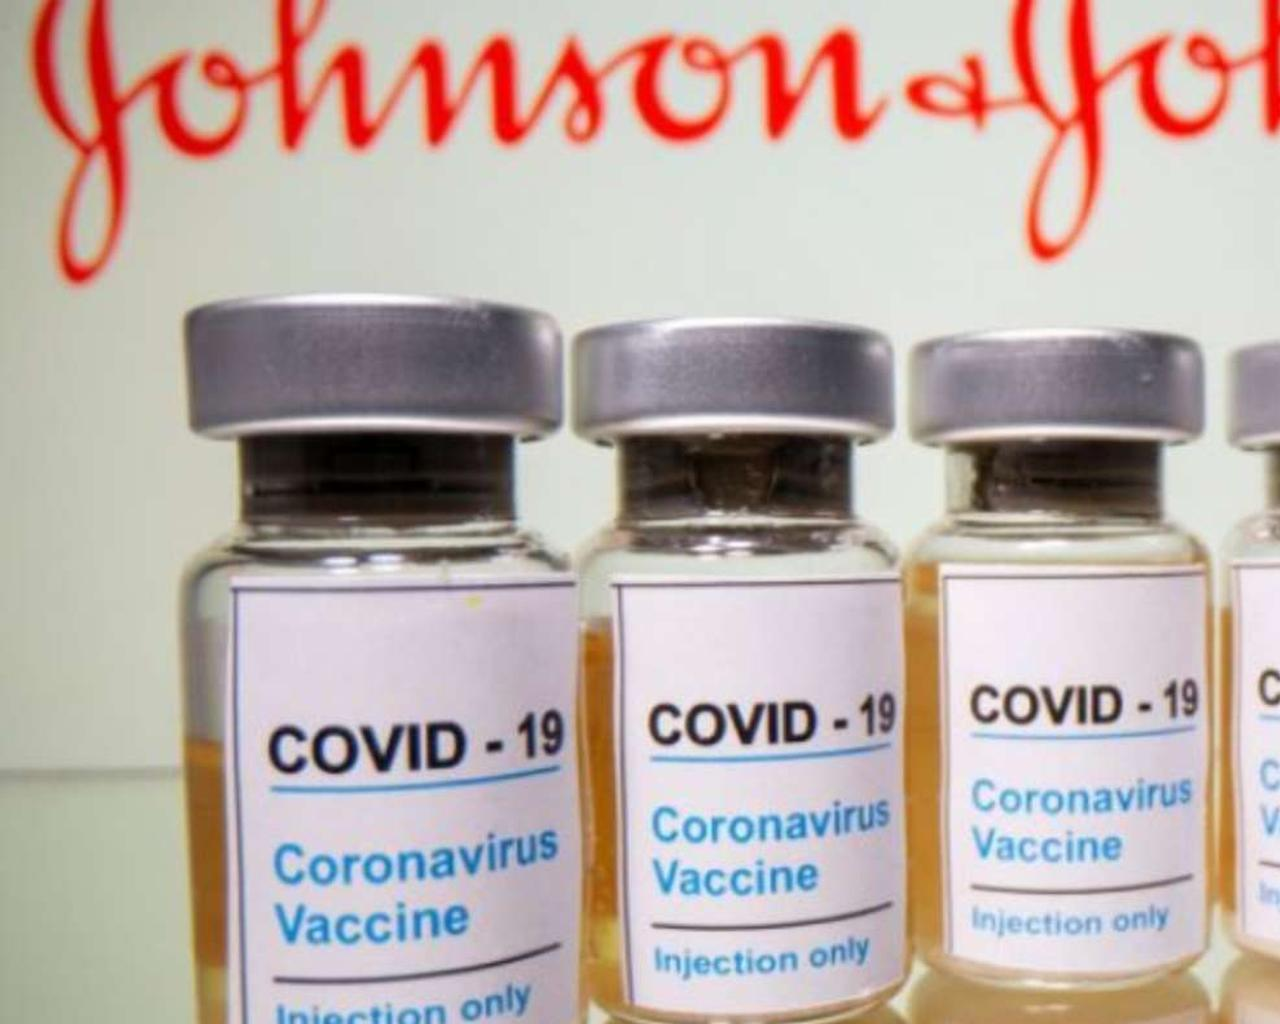 The FDA recommended temporarily suspending vaccination with the Johnson & Johnson formula